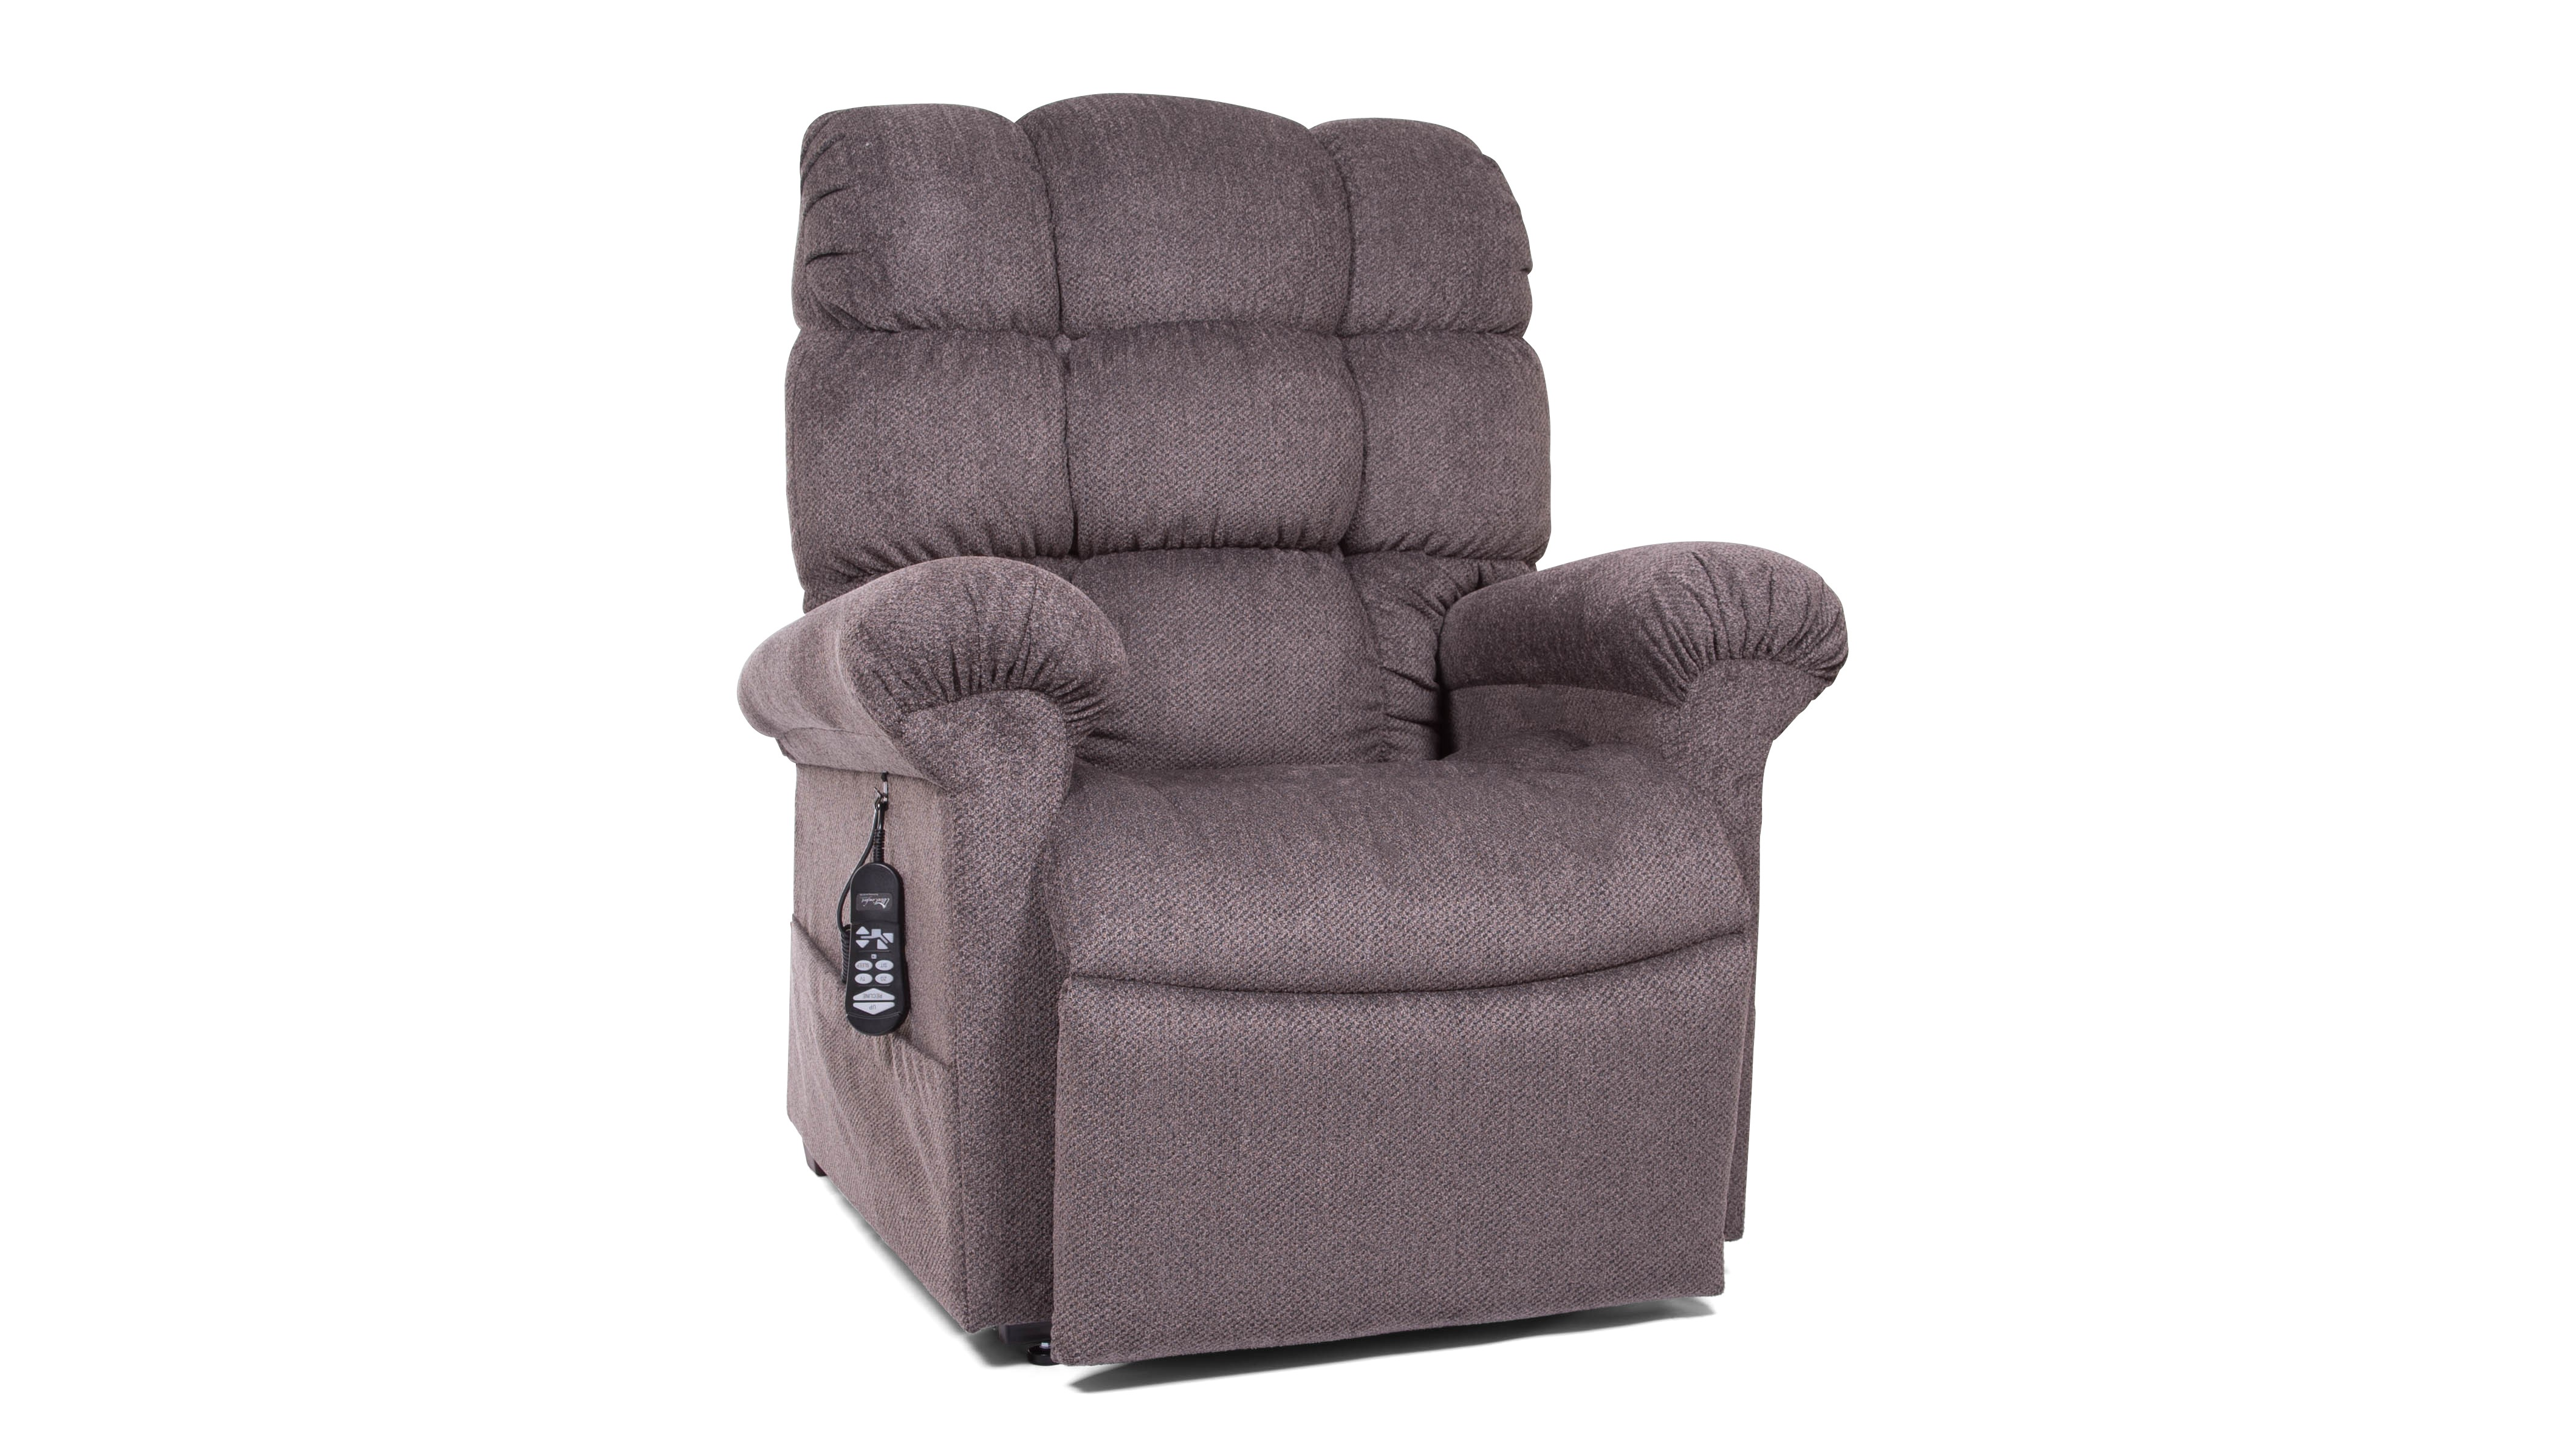 Stellar Lift Chair- The Cozy Comfort